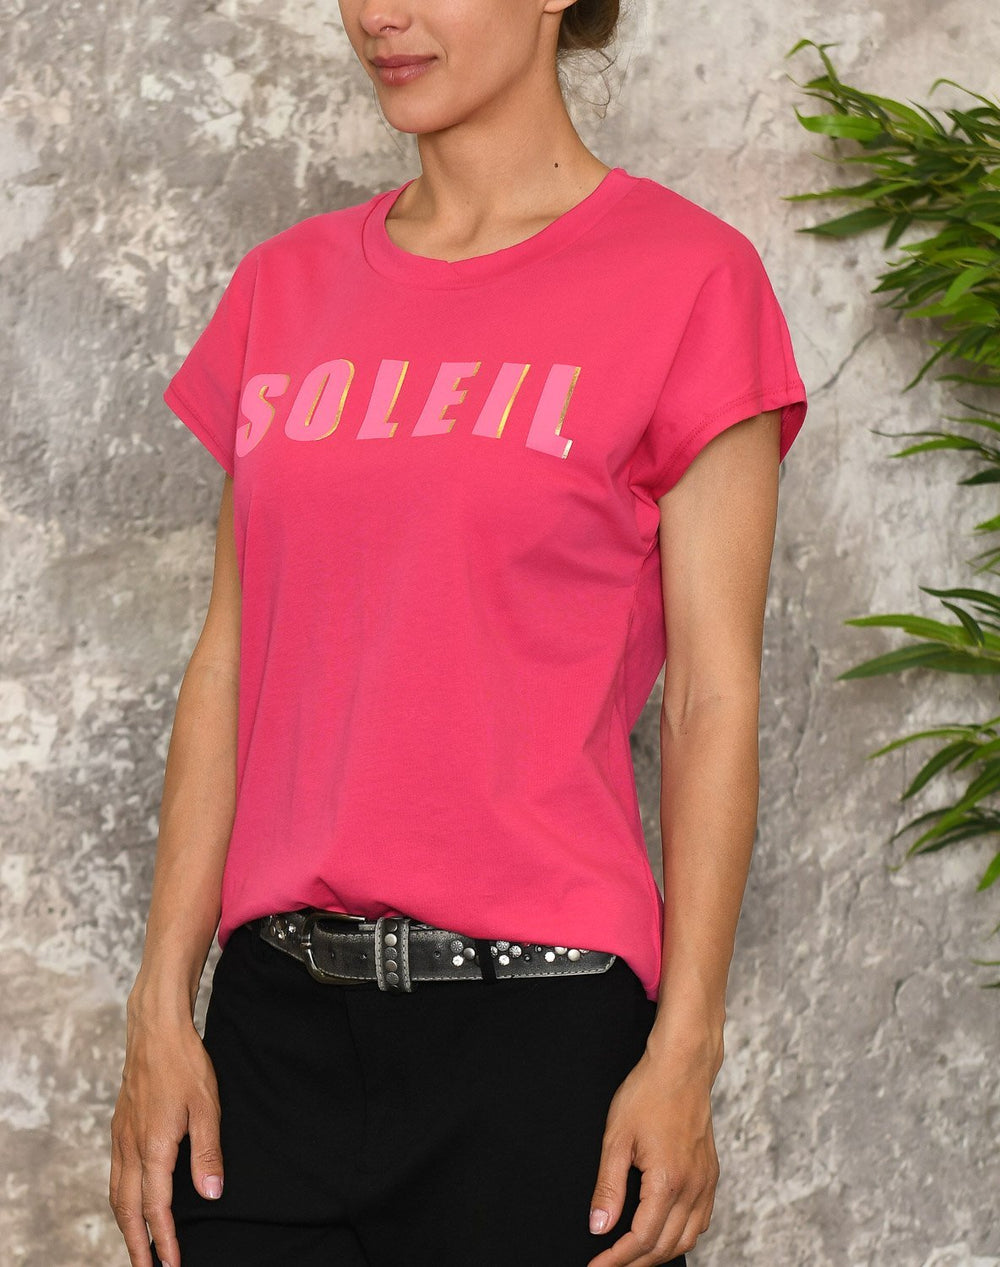 Kaffe KAmeriam t-shirt bright rose - Online-Mode